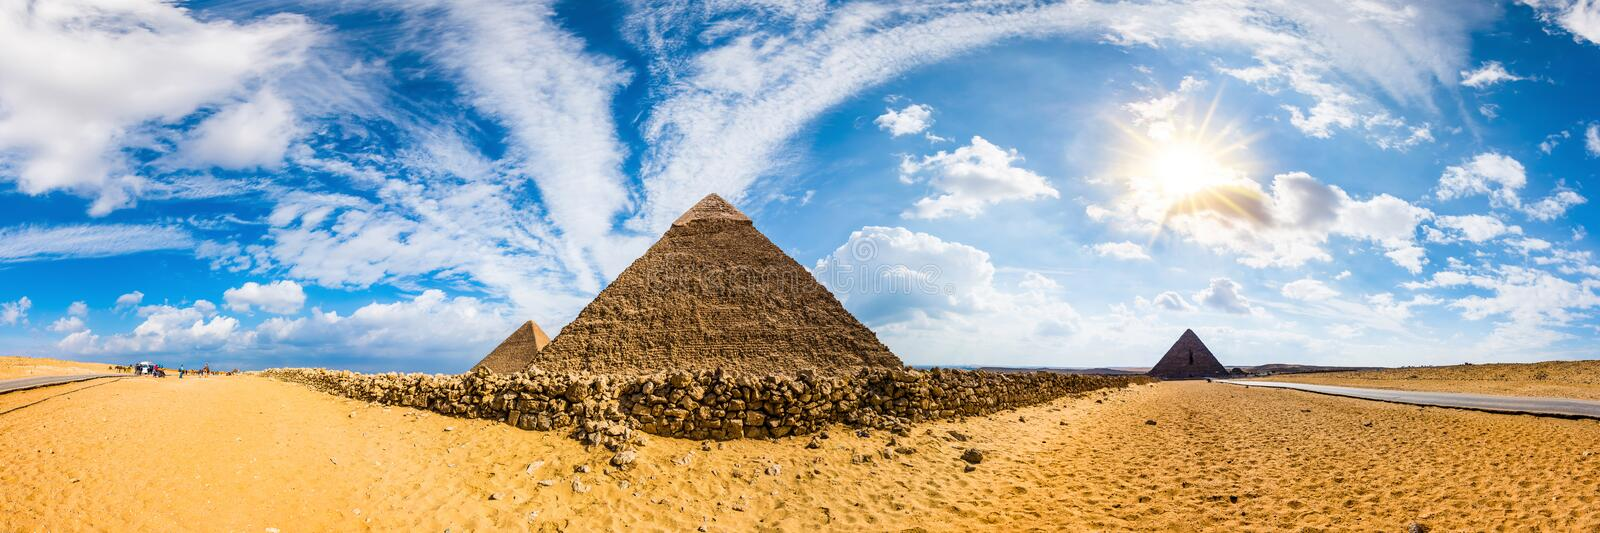 The great pyramids of Giza, Egypt. Panorama of the area with the great pyramids of Giza, Egypt stock image